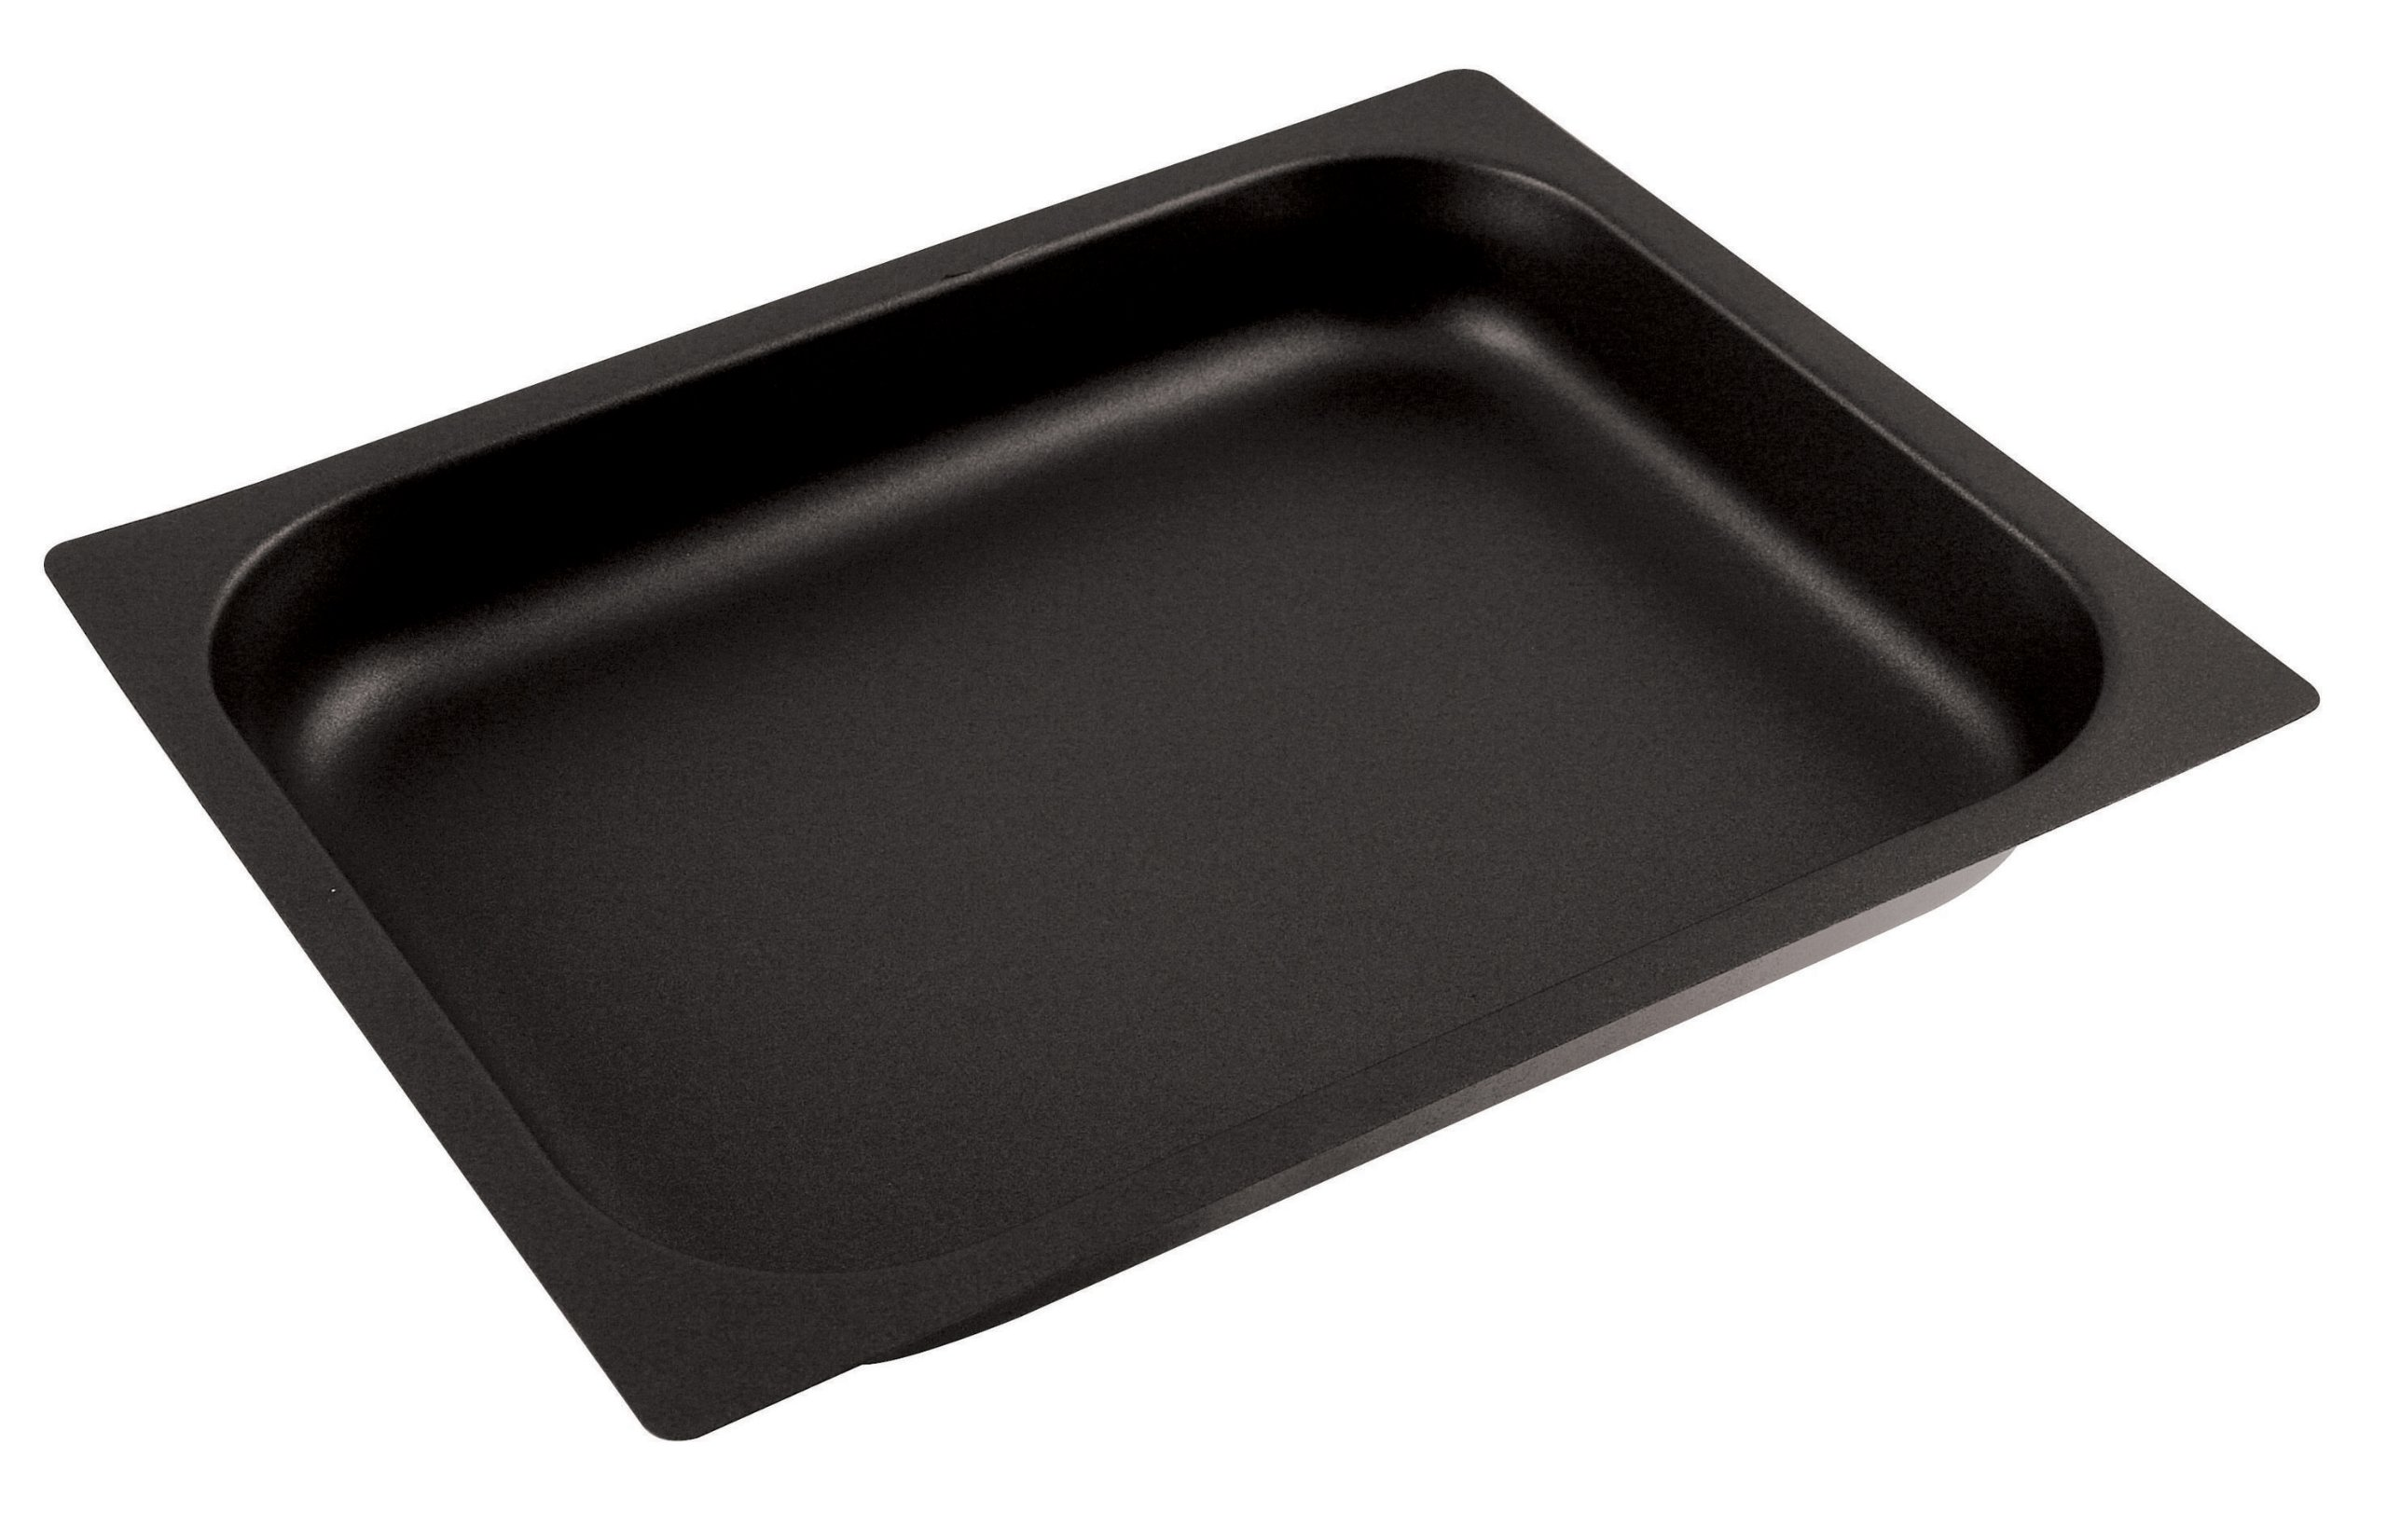 Paderno World Cuisine 12 1/2 inches by 10 1/2 inches Non-stick Baking Sheet for Hotel Pan - 1/2 (depth: 2 1/2 inches)